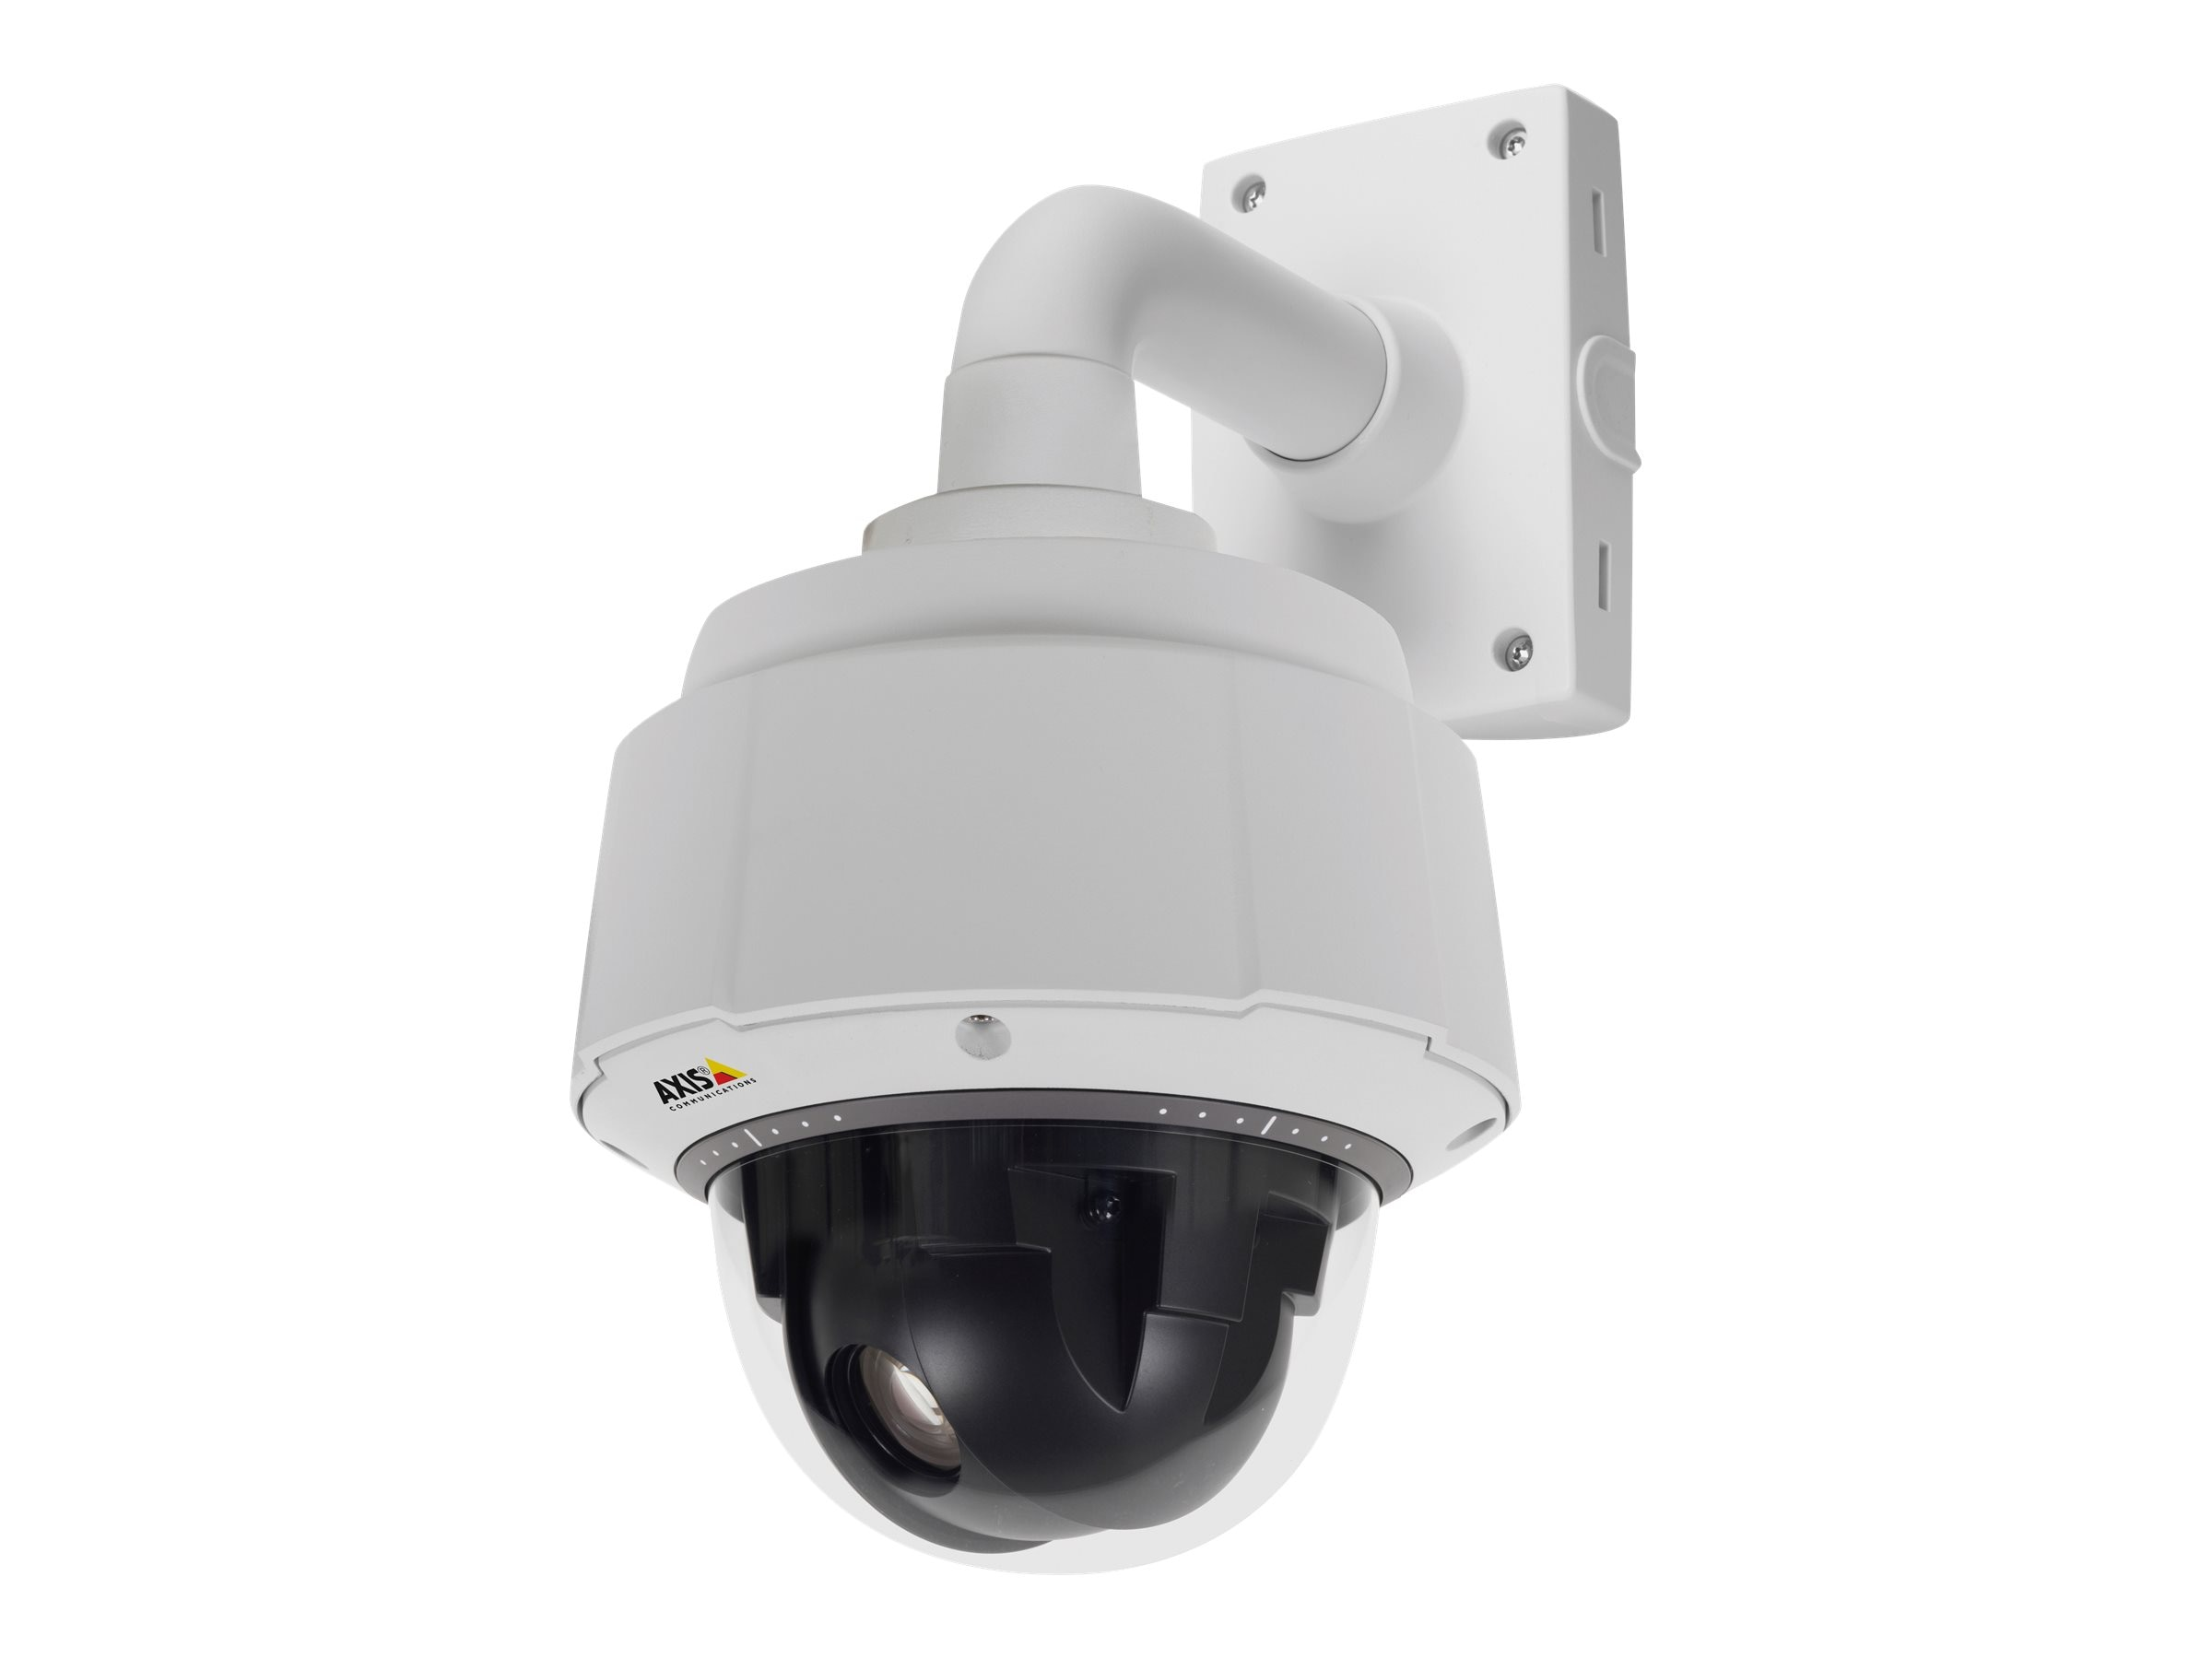 Axis Q6044-E PTZ Dome Network Camera, 0572-004, 16398914, Cameras - Security